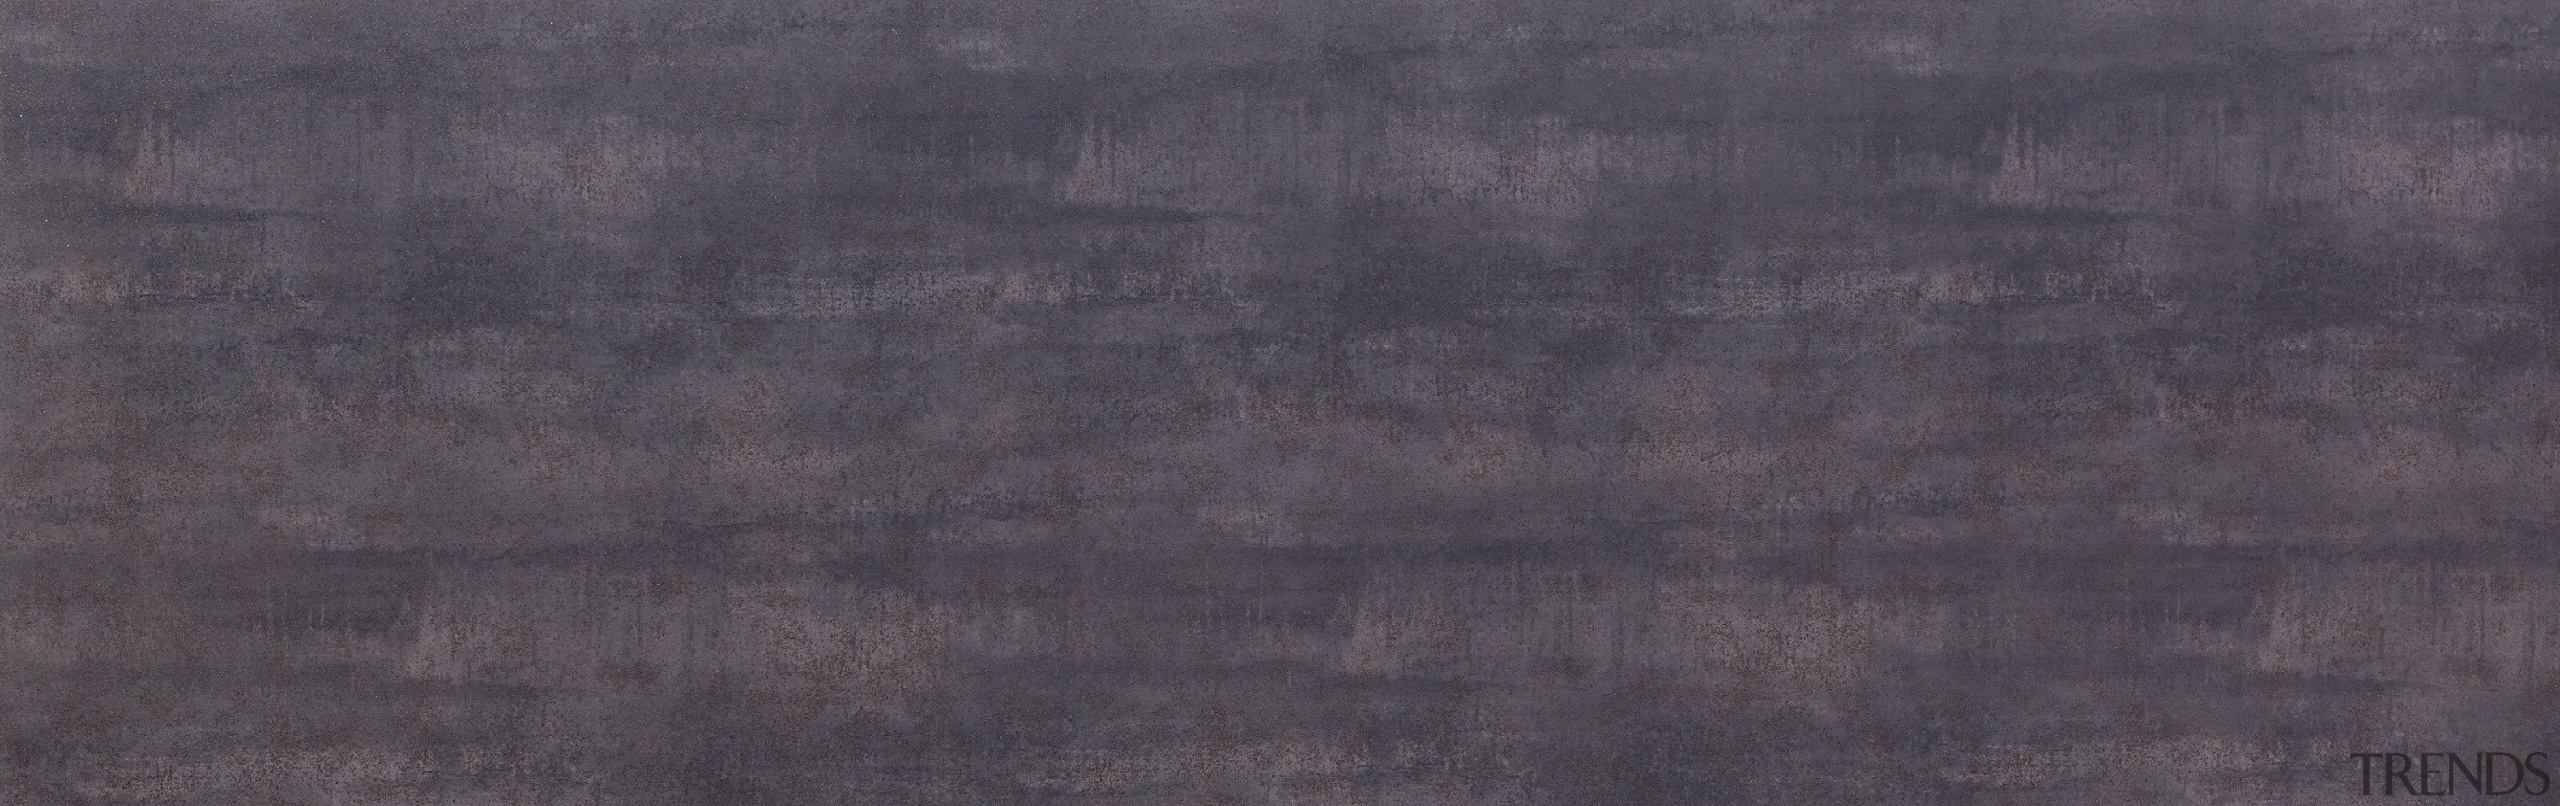 Iron Grey - brown | texture | wood brown, texture, wood, wood stain, gray, black